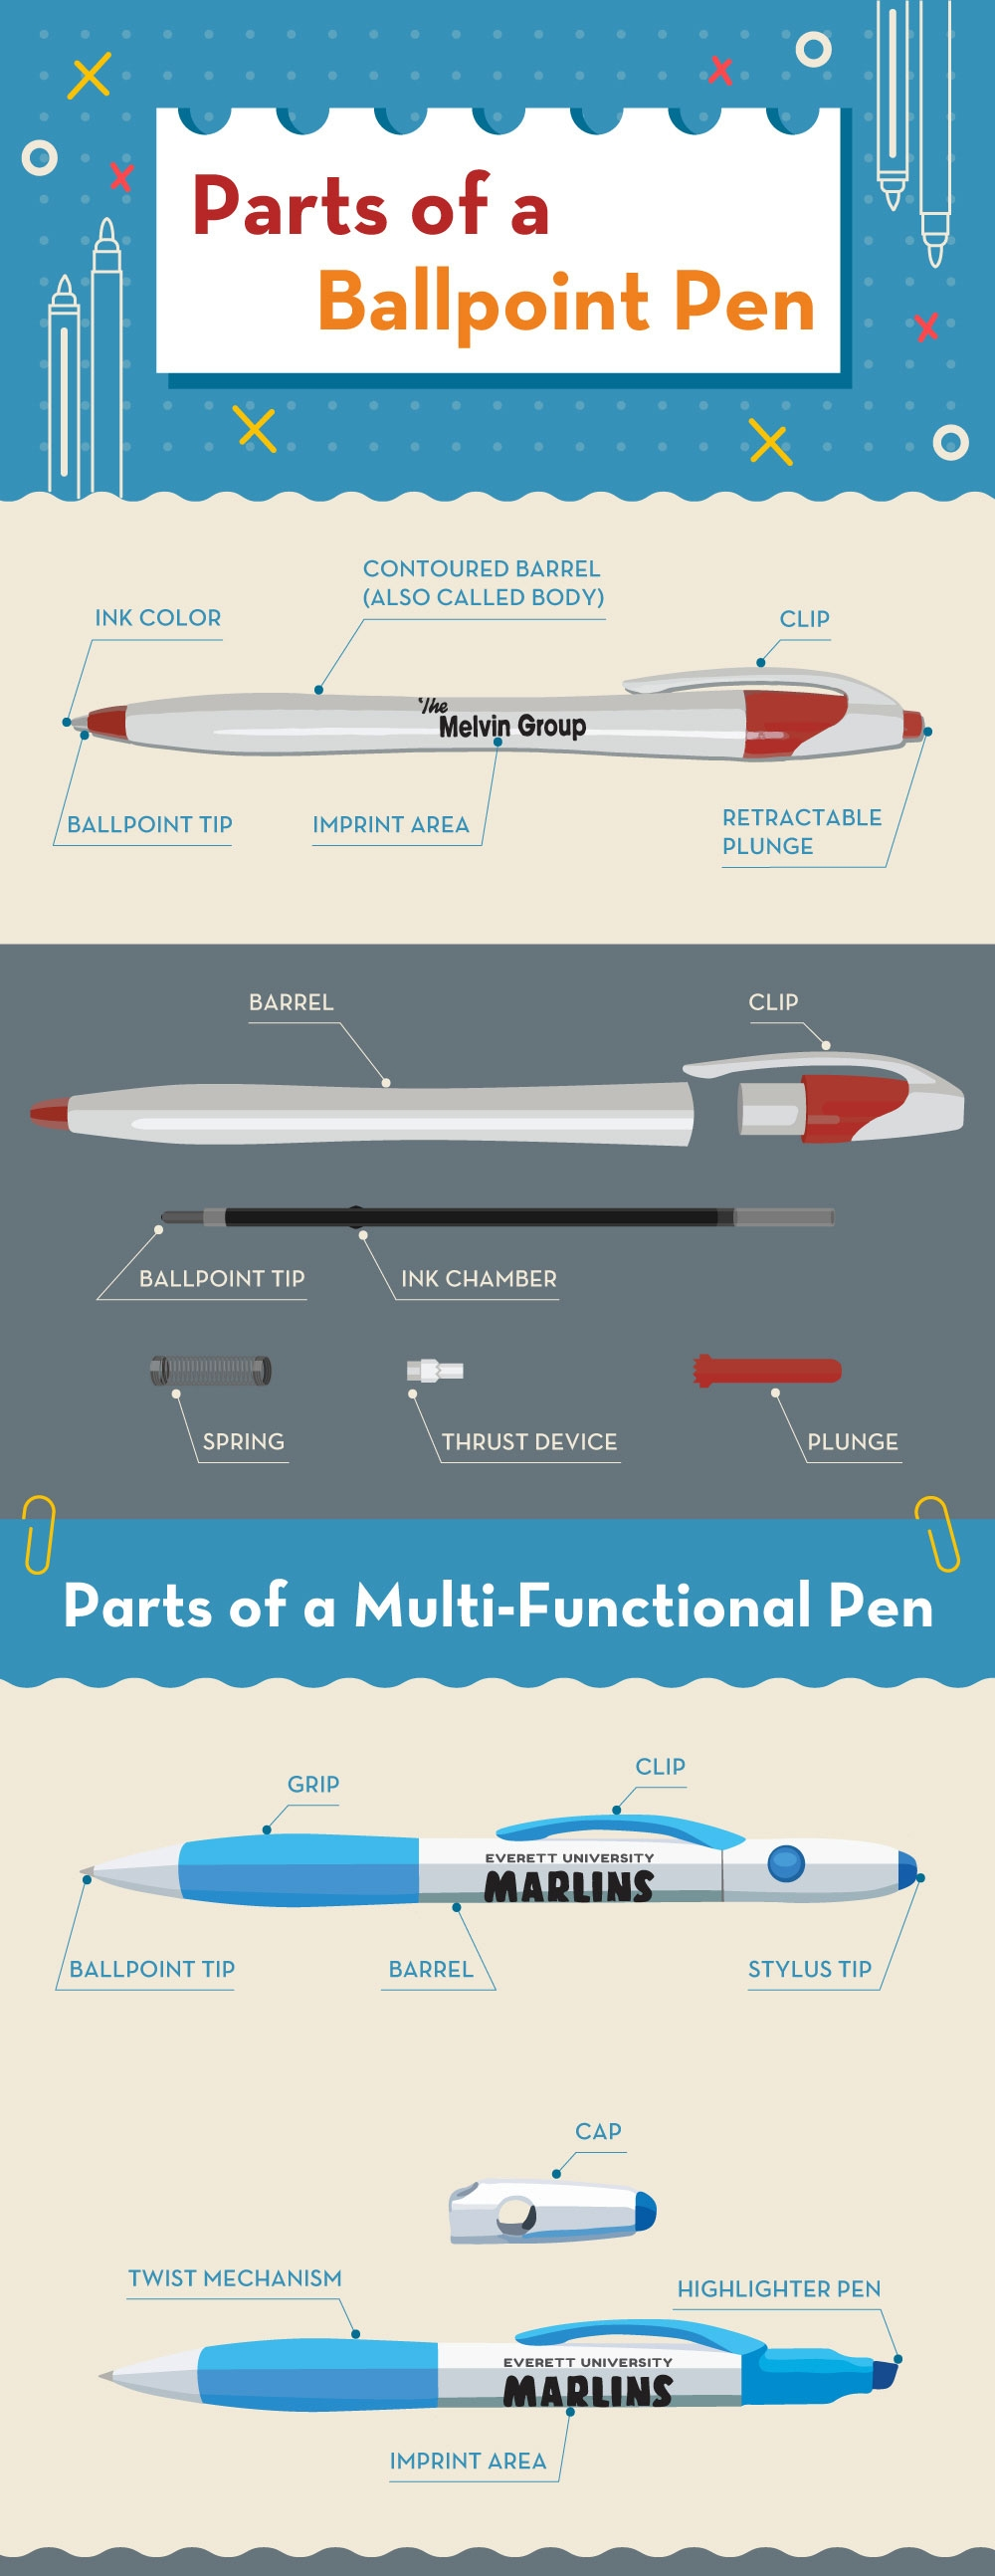 Pen Anatomy Infographic